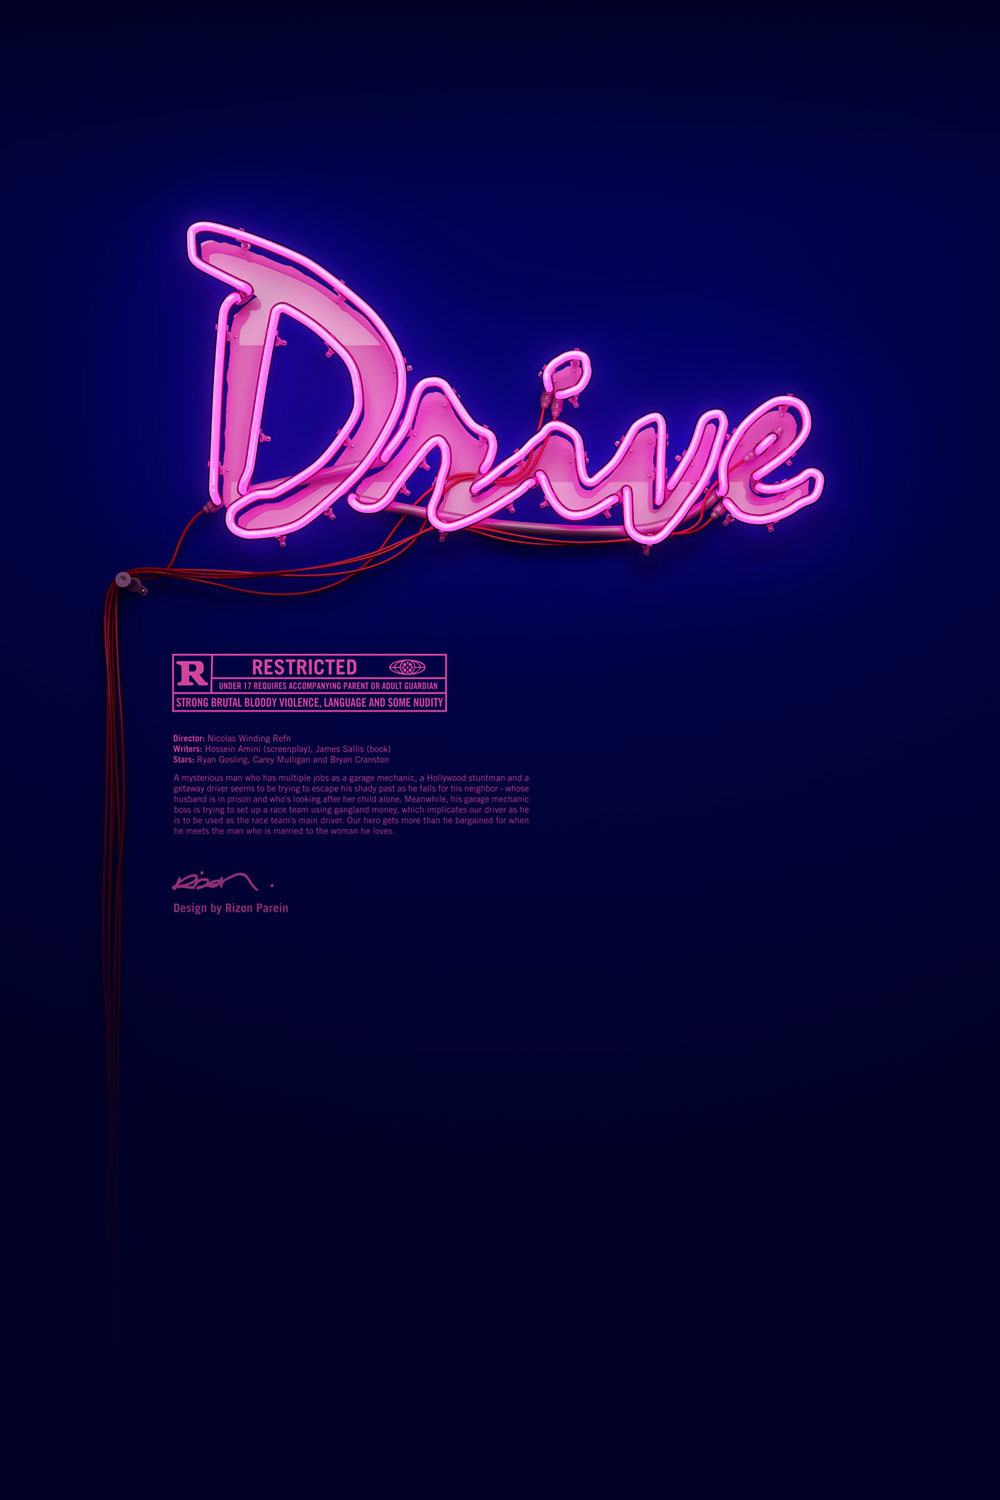 Neon Drive Poster by Rizon Parein | Yellowtrace